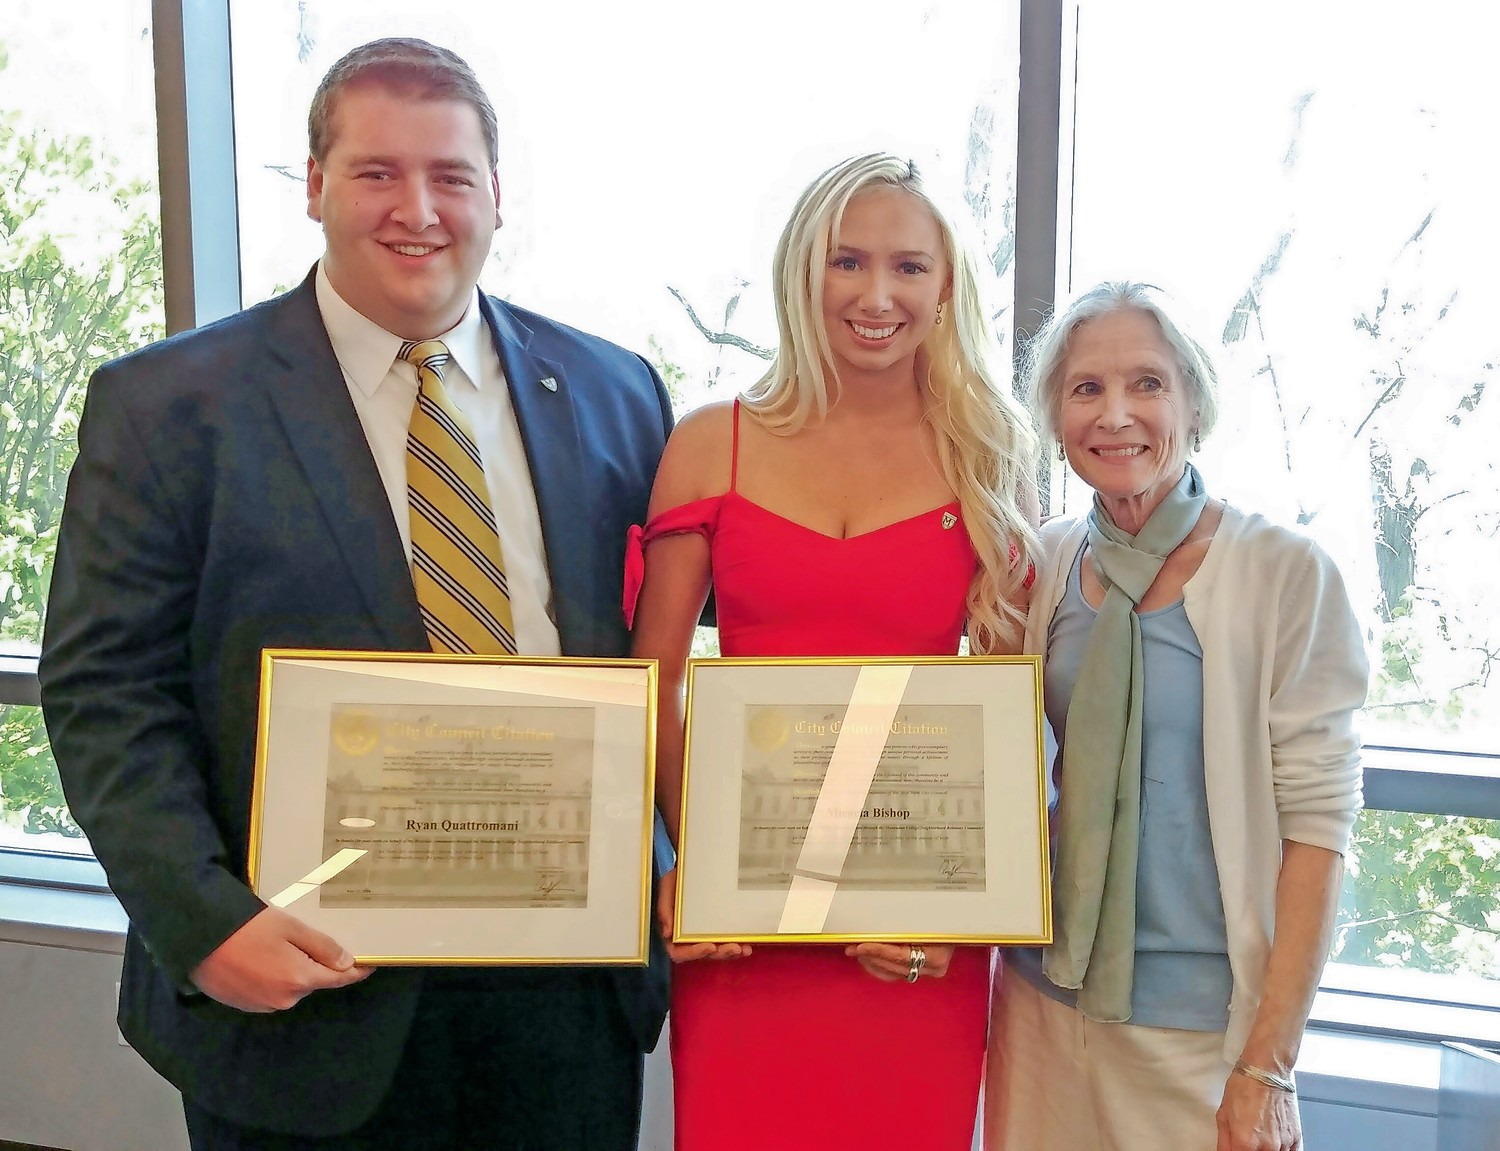 Ryan Quattromani and Micaela Bishop hold the citations they received from Councilman Andrew Cohen for their work forging stronger community ties through the Manhattan College Neighborhood Relations Committee.